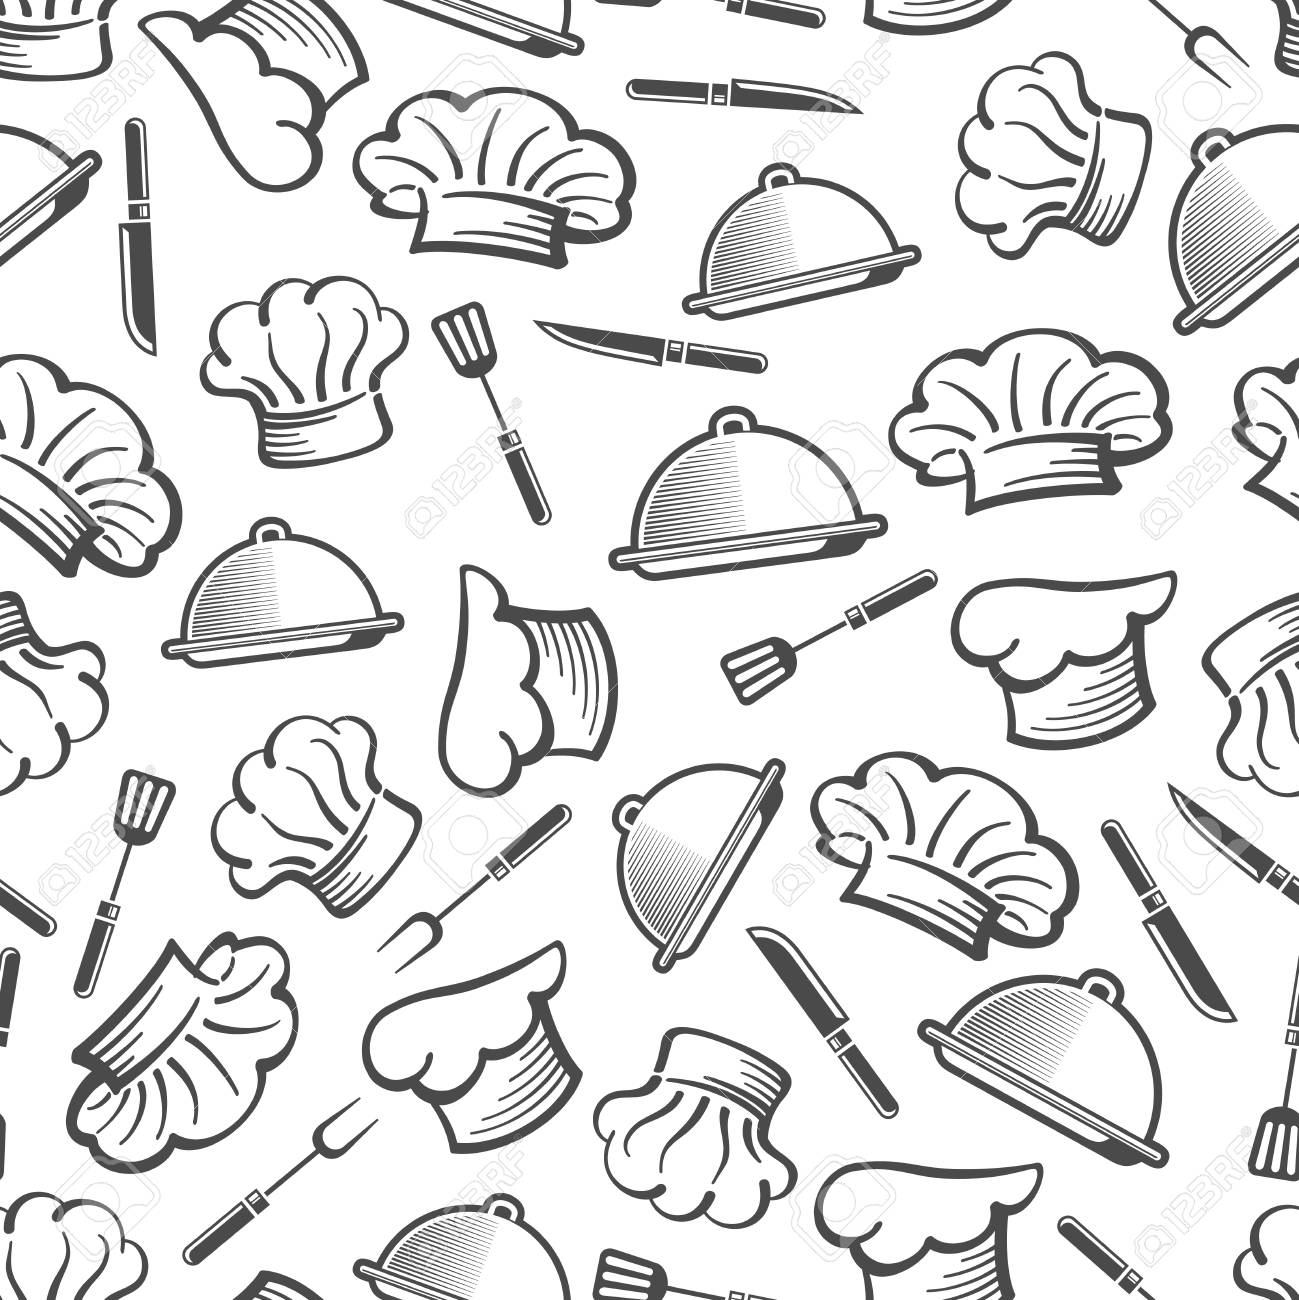 409cb6593f3 Kitchen seamless background pattern - chef hat dish and cutlery texture. Vector  illustration Stock Vector